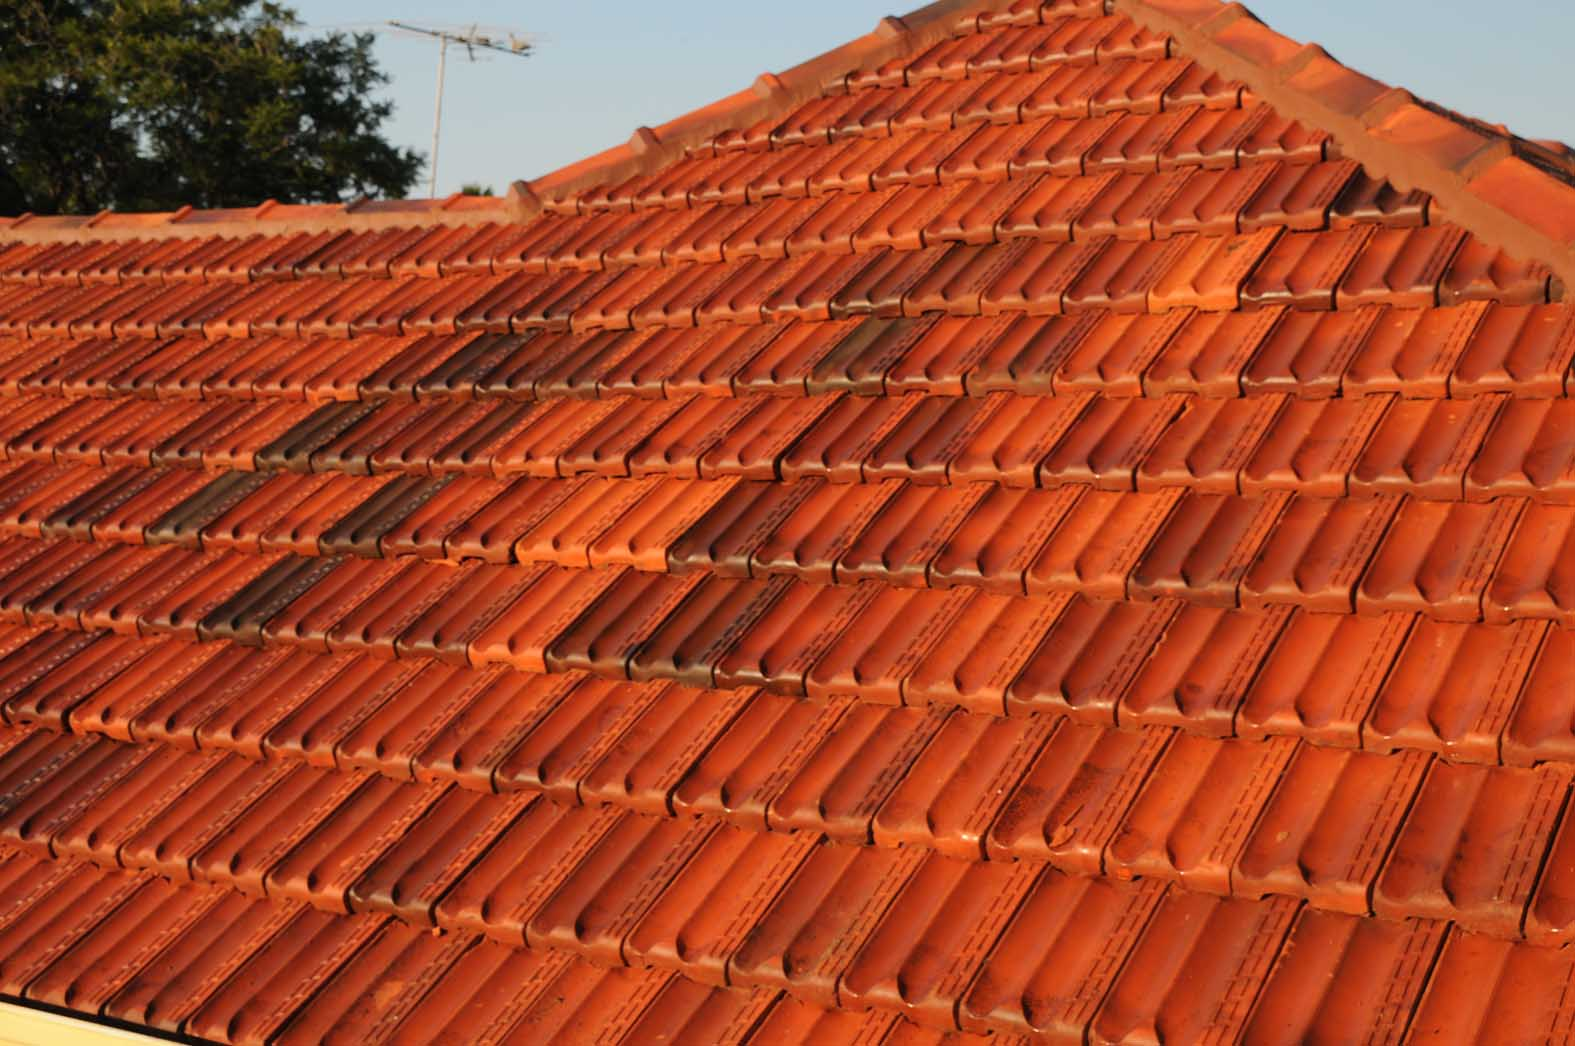 Terracotta re-roof